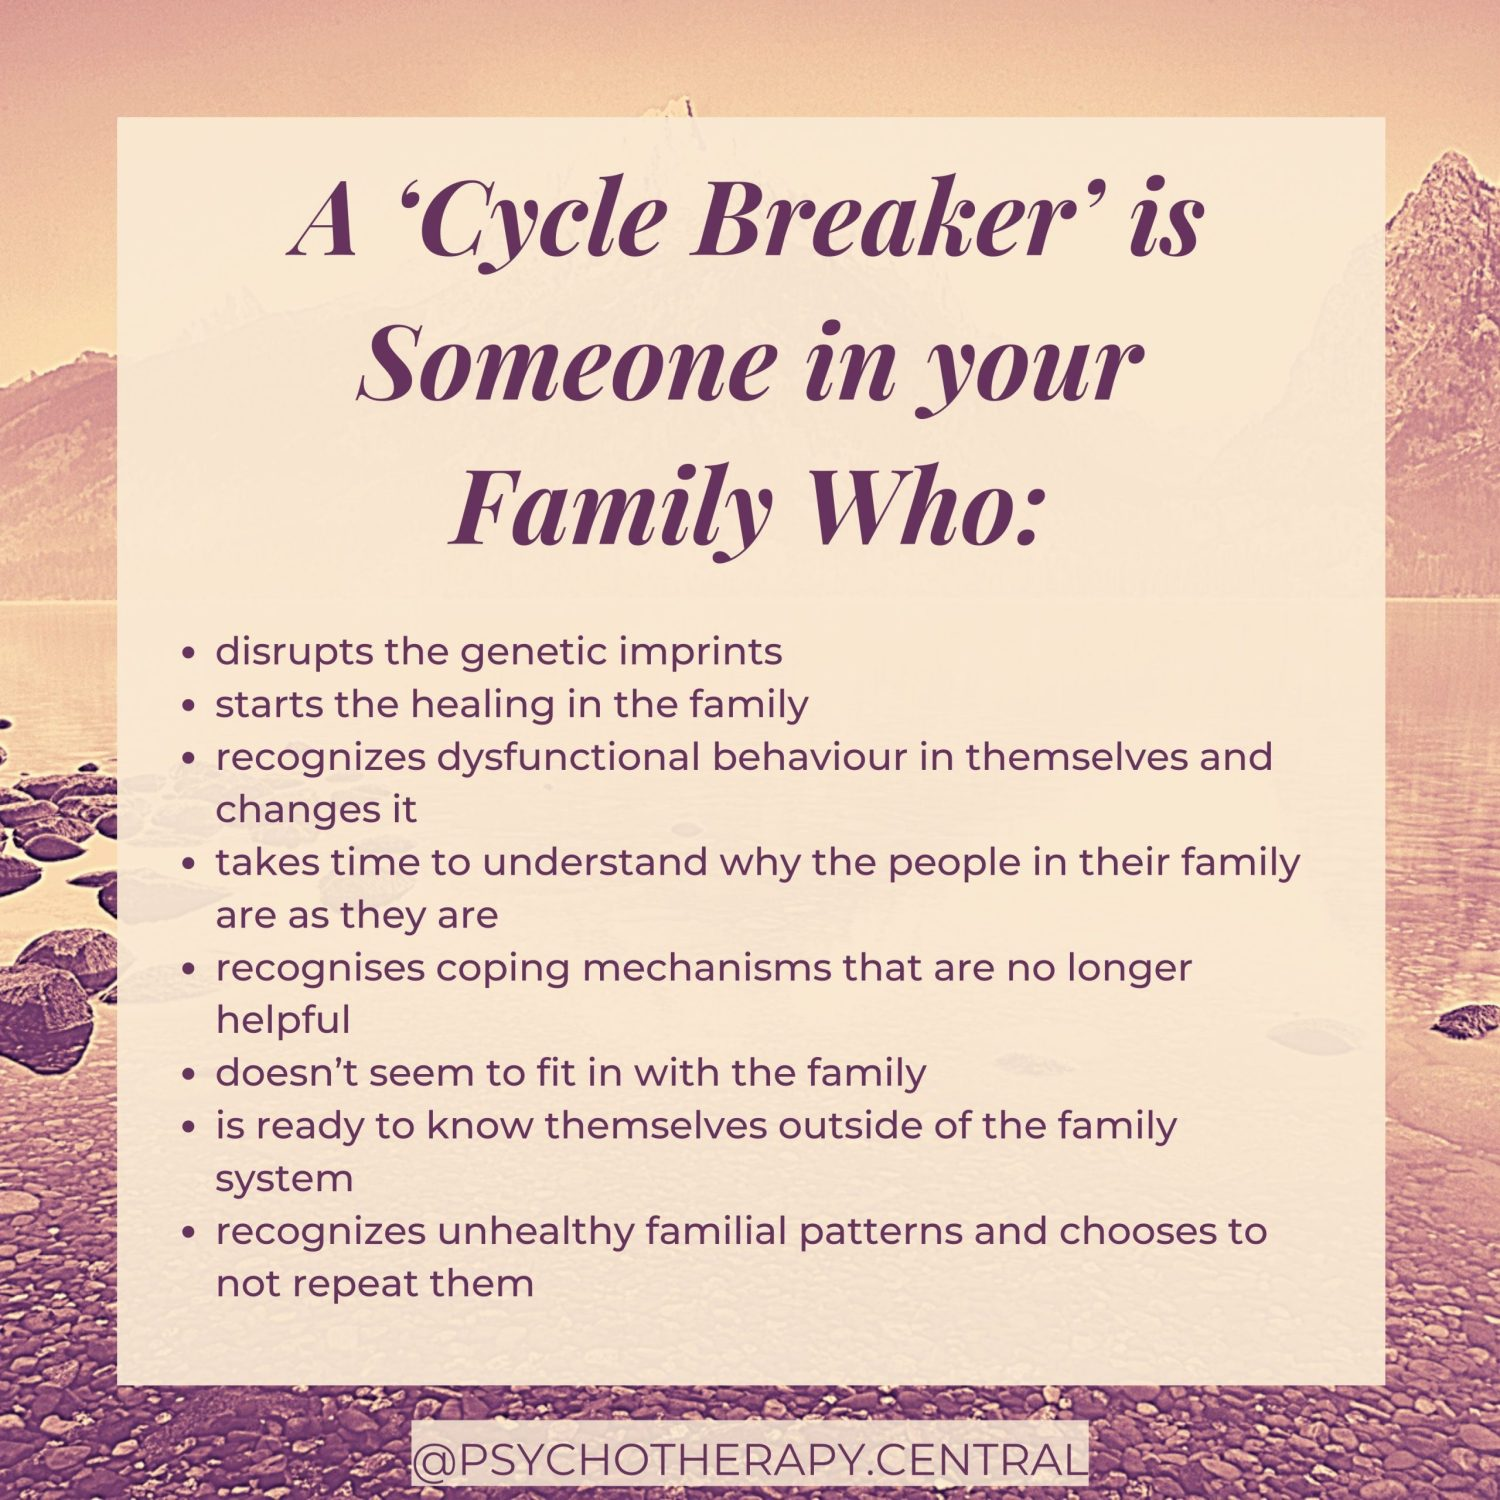 A 'Cycle Breaker' is Someone in your Family Who...